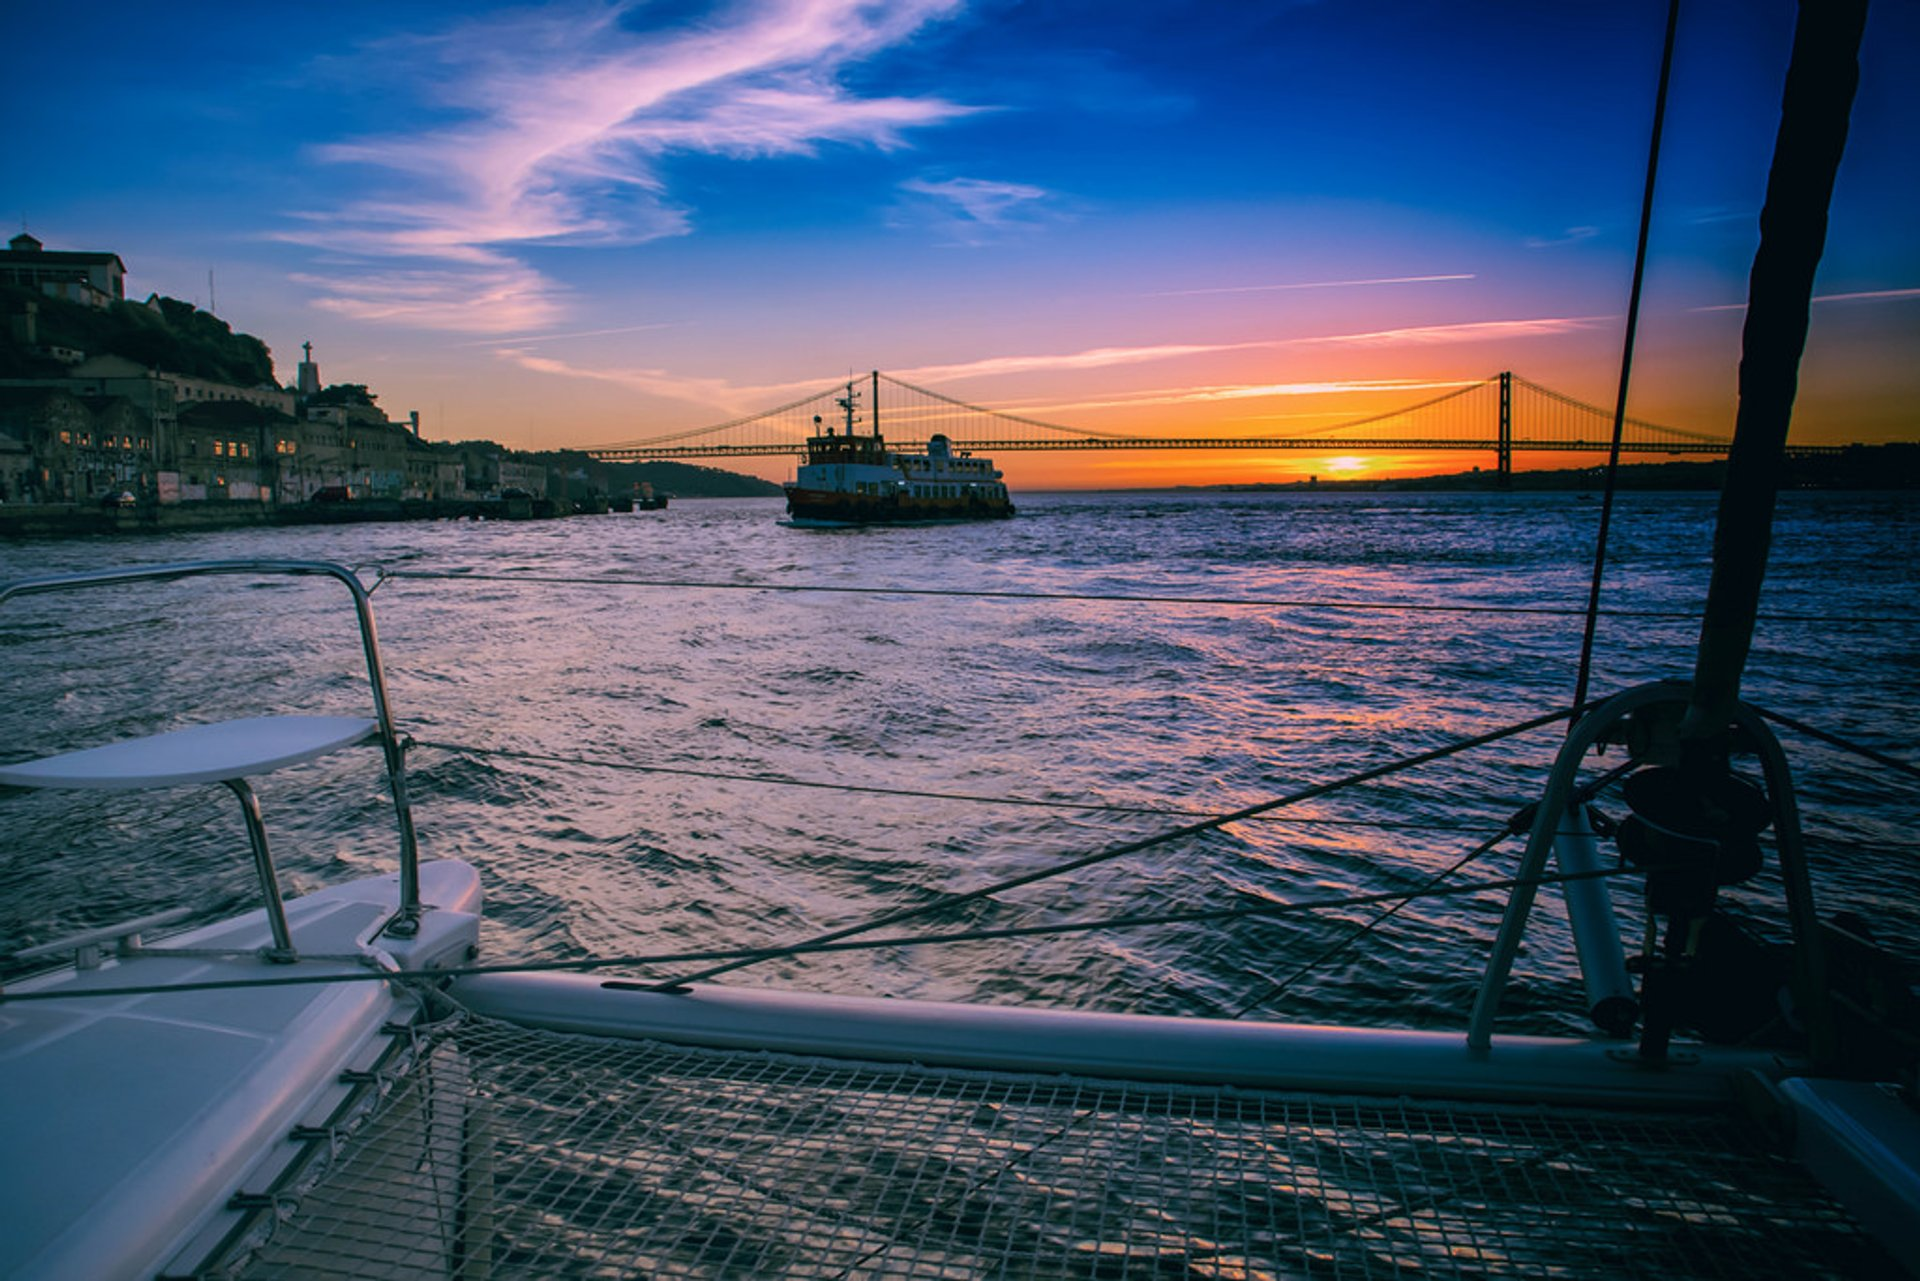 Tagus River Sunset Cruise in Lisbon 2019 - Best Time